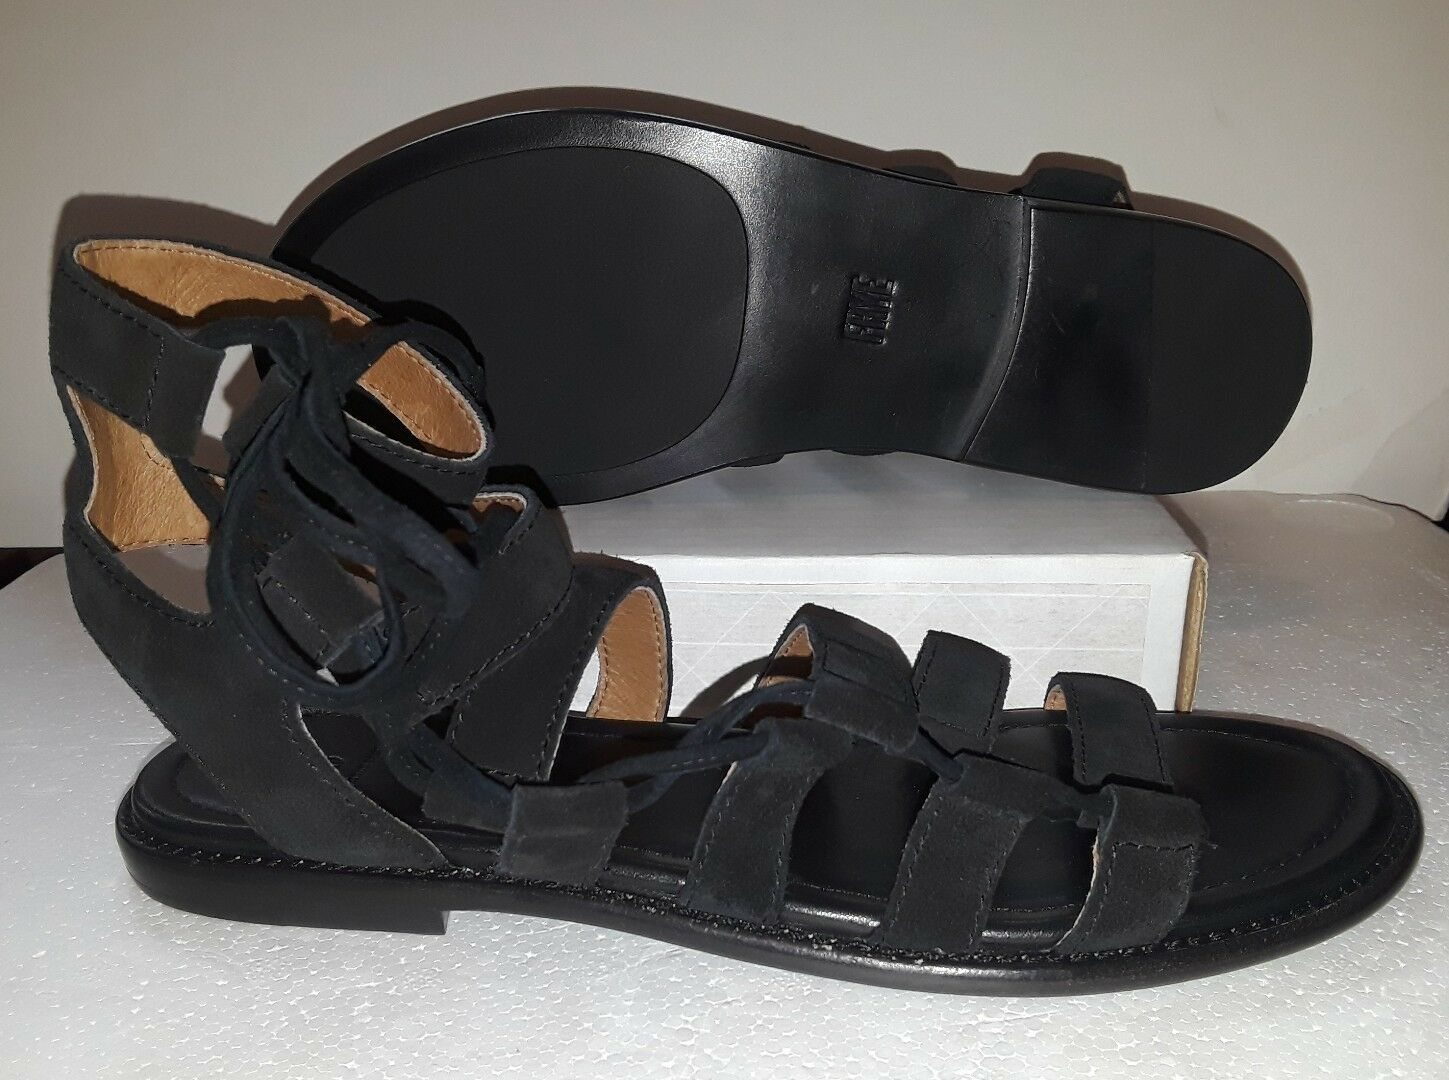 FRYE WOMEN'S BLAIR SLIDE GHILLIE GLADIATOR BLACK SUEDE SANDAL 3470224  SZ: 5.5M